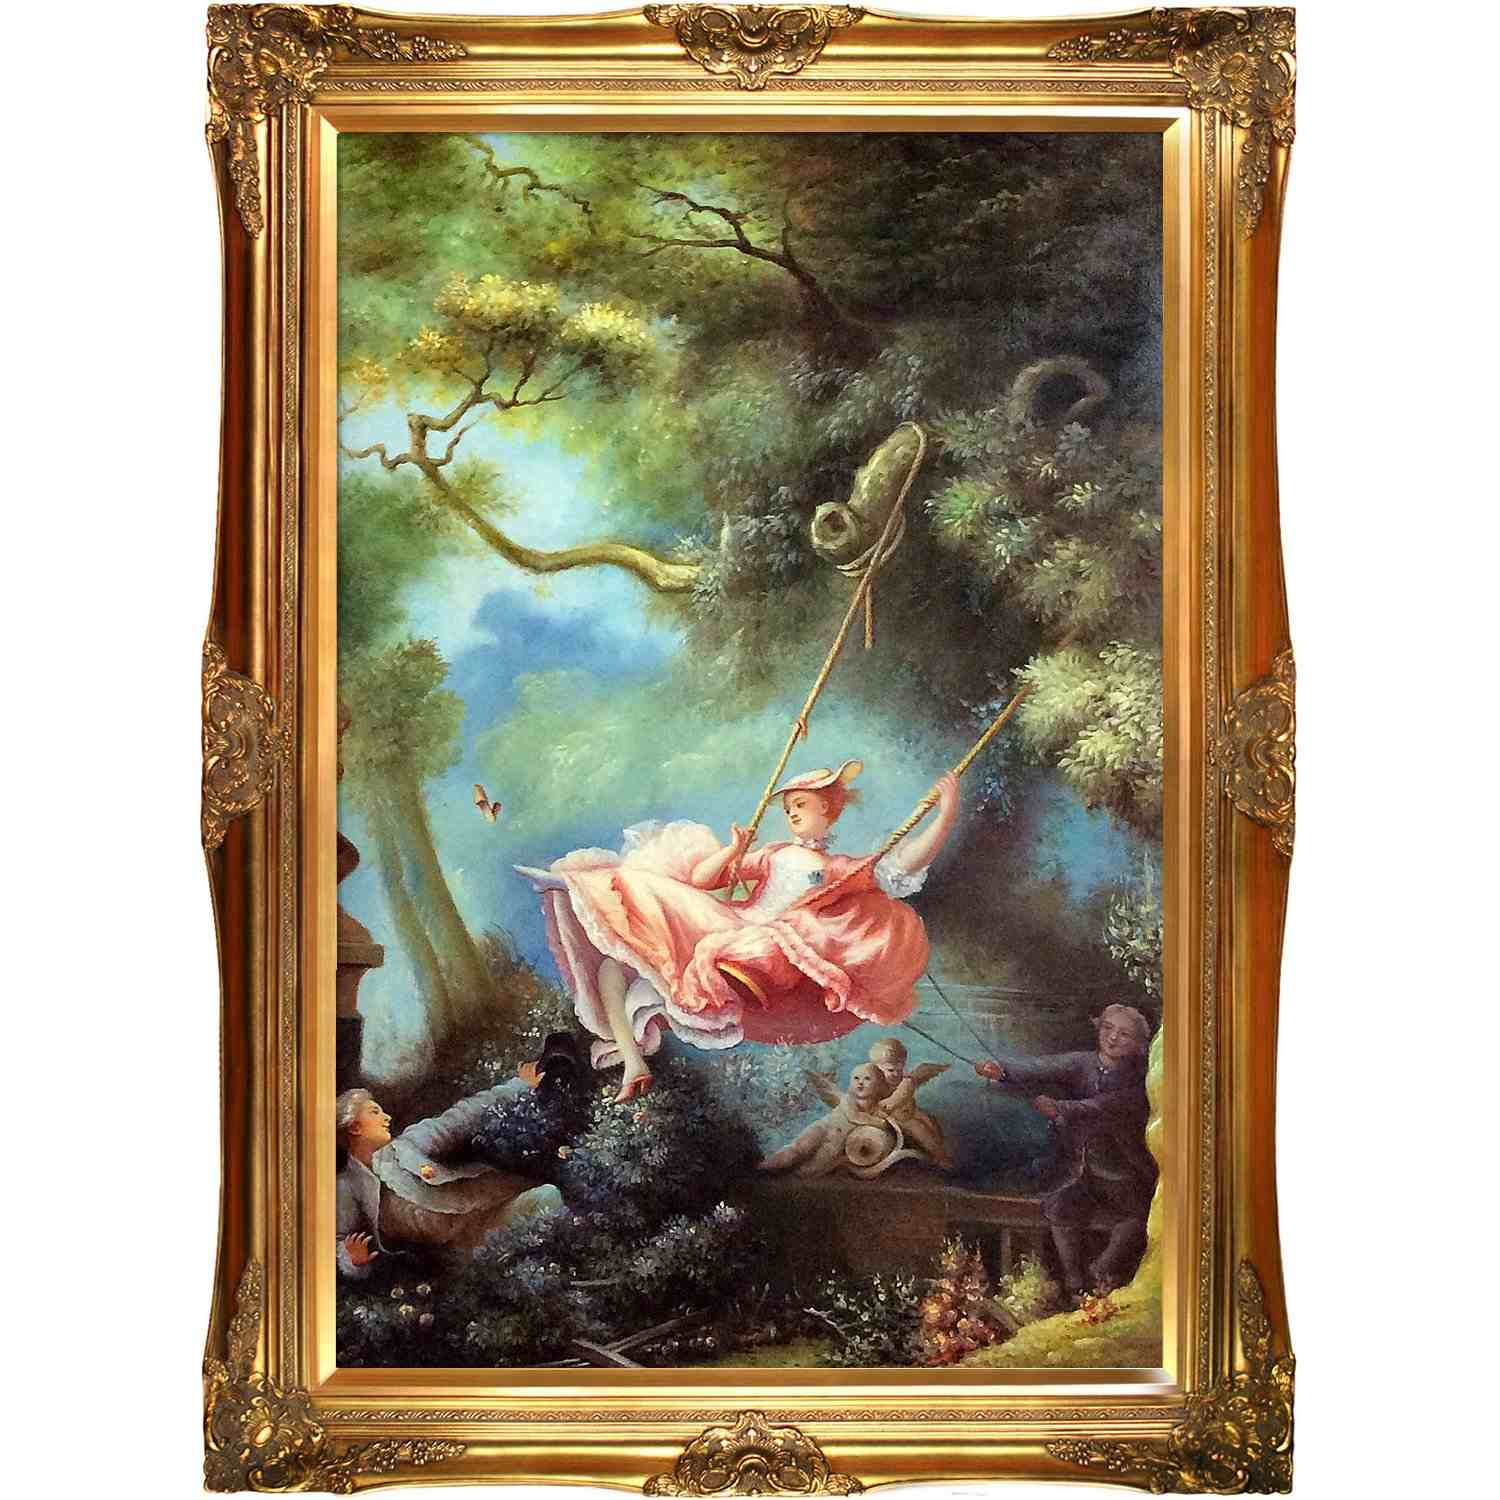 Overstock-Art-The-Swing-c.1765-by-Jean-Honore-Fragonard-Framed-Original-Painting-on-Canvas